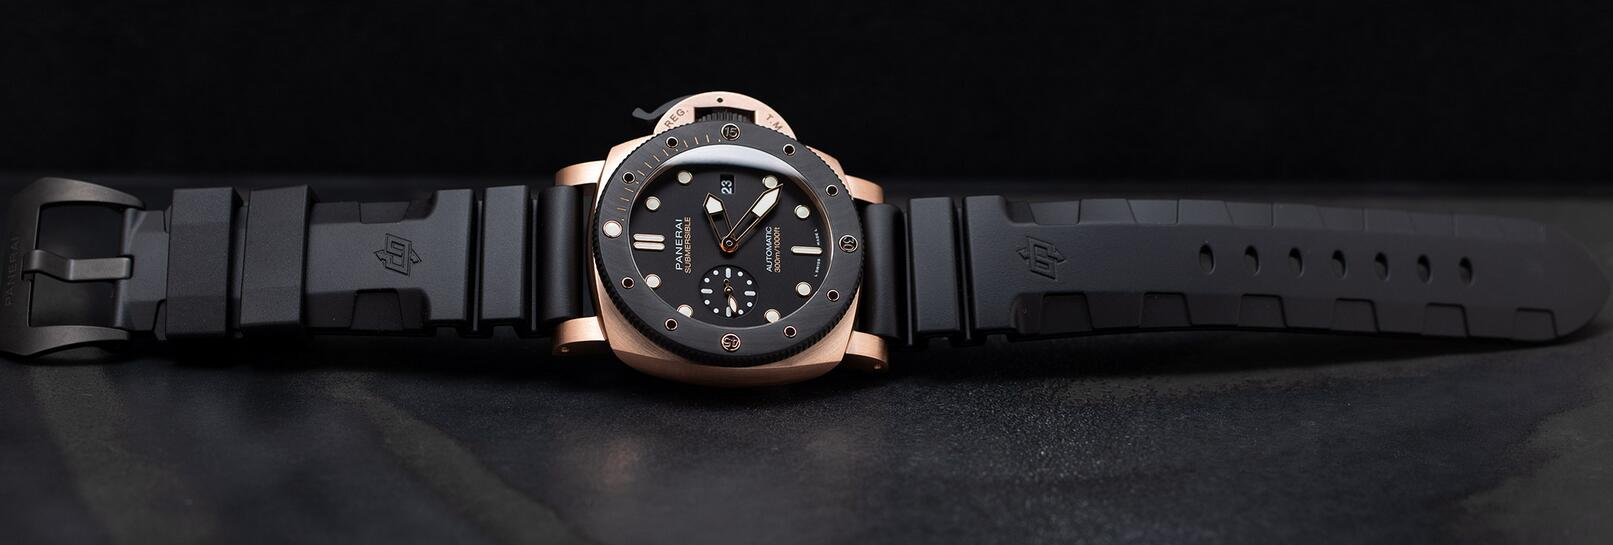 Online replica watches ensure best water resistance.